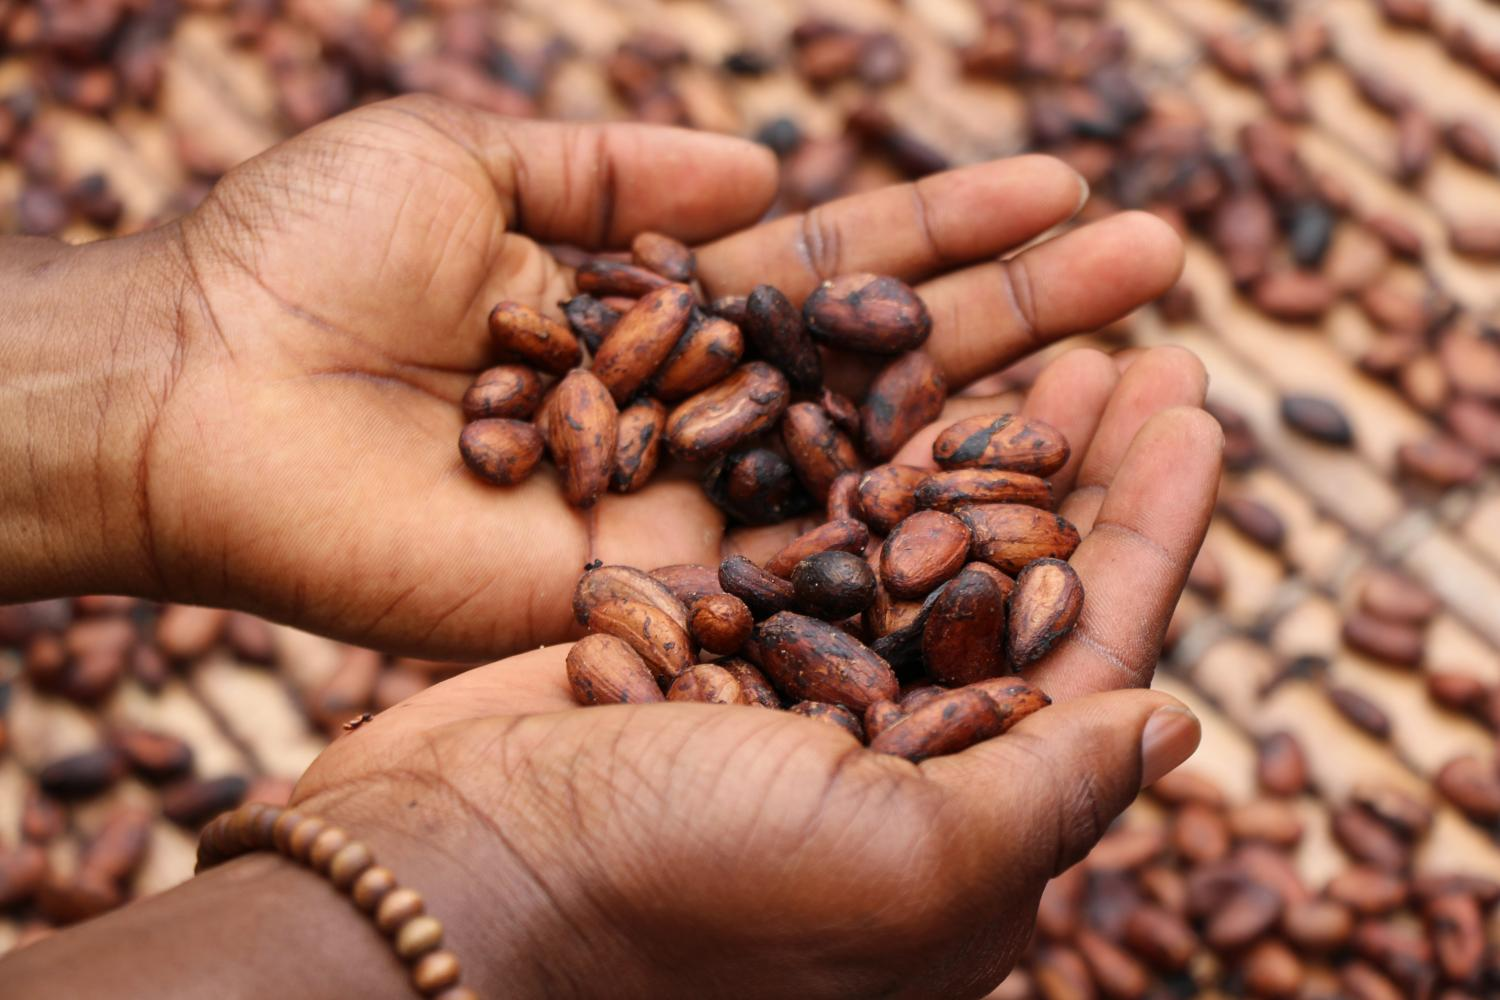 Cacao is a superfood